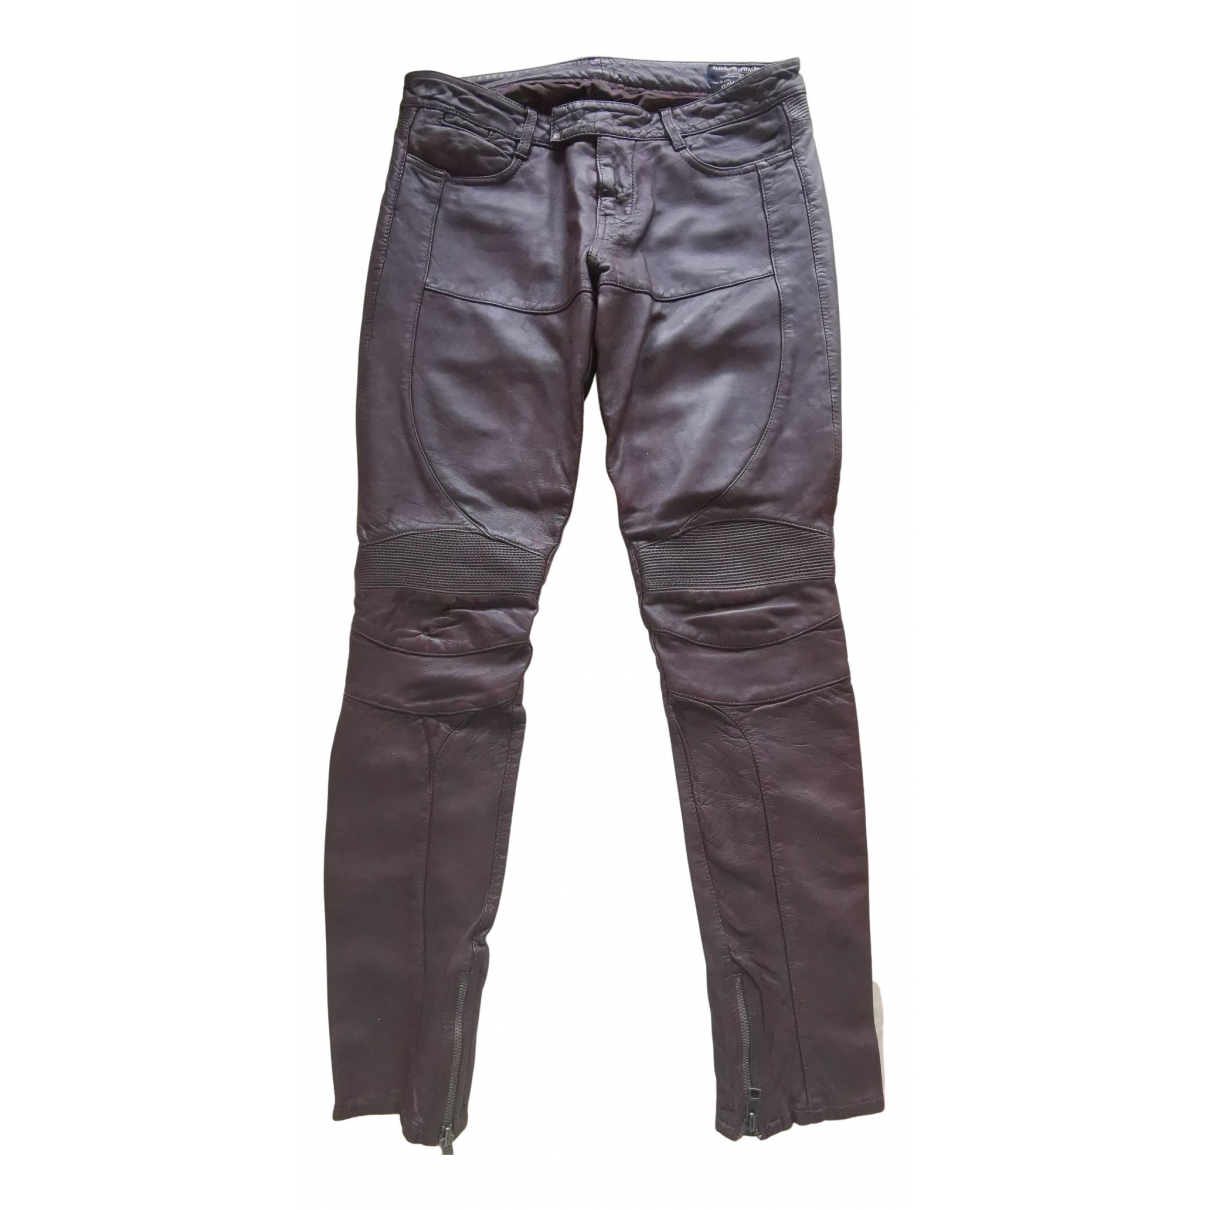 All Saints N Brown Leather Trousers for Women M International